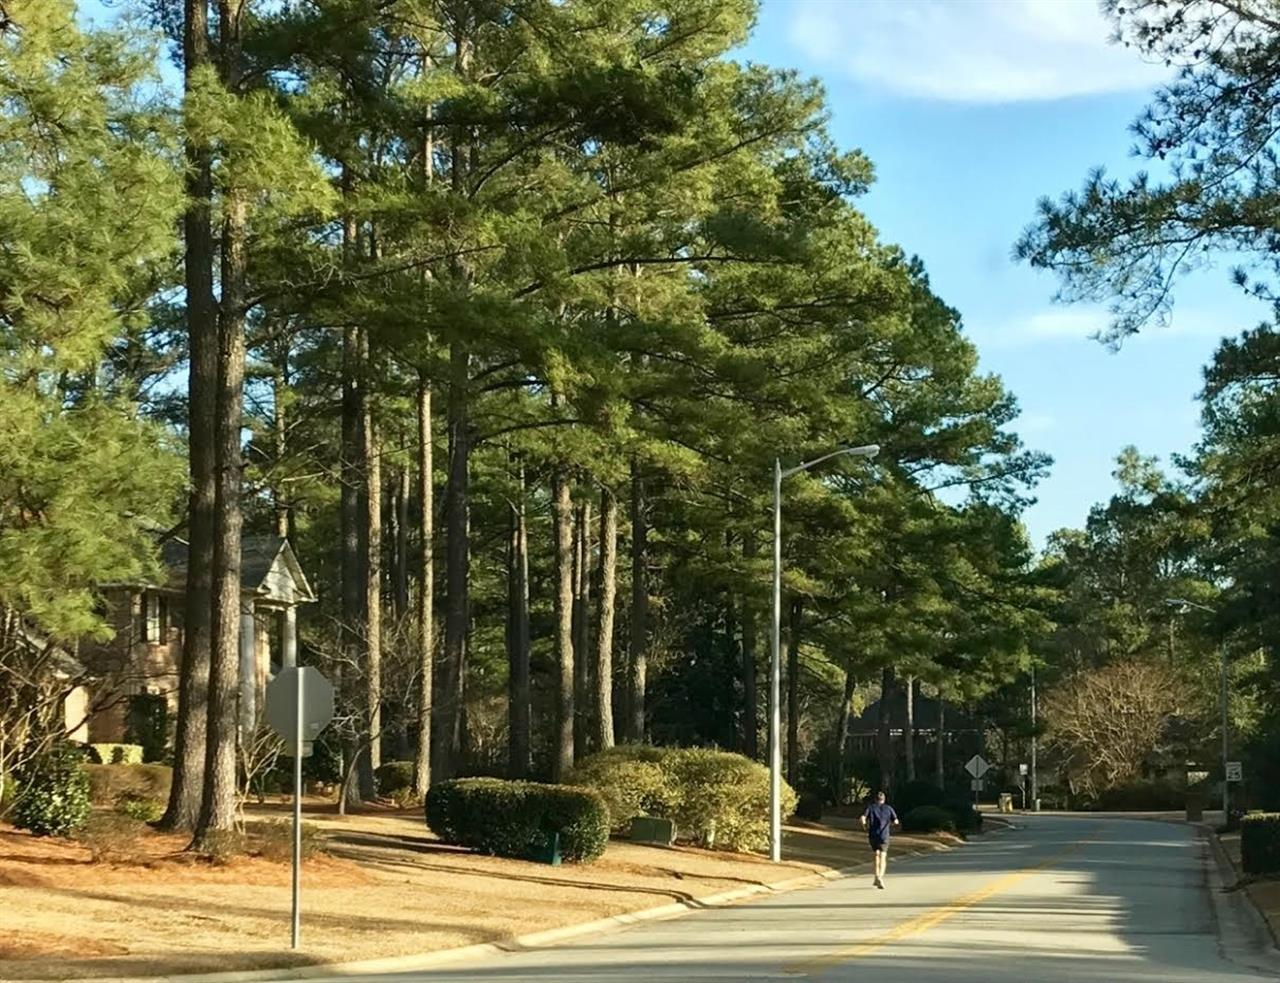 Tree-lined neighborhood in Fayetteville, North Carolina.  Submitted by Lee McMillan